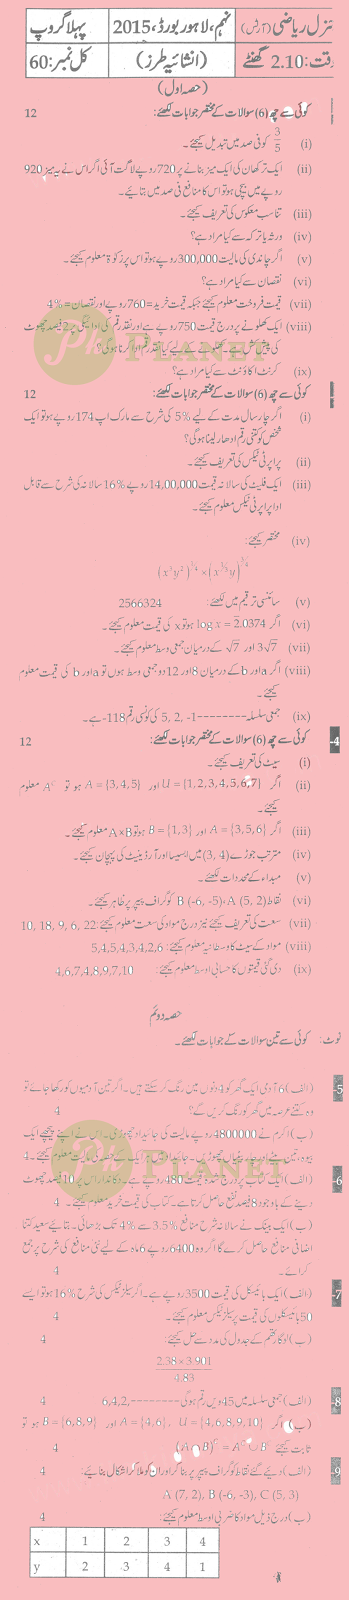 Past Papers of 9th Class Lahore Board 2015 General Math